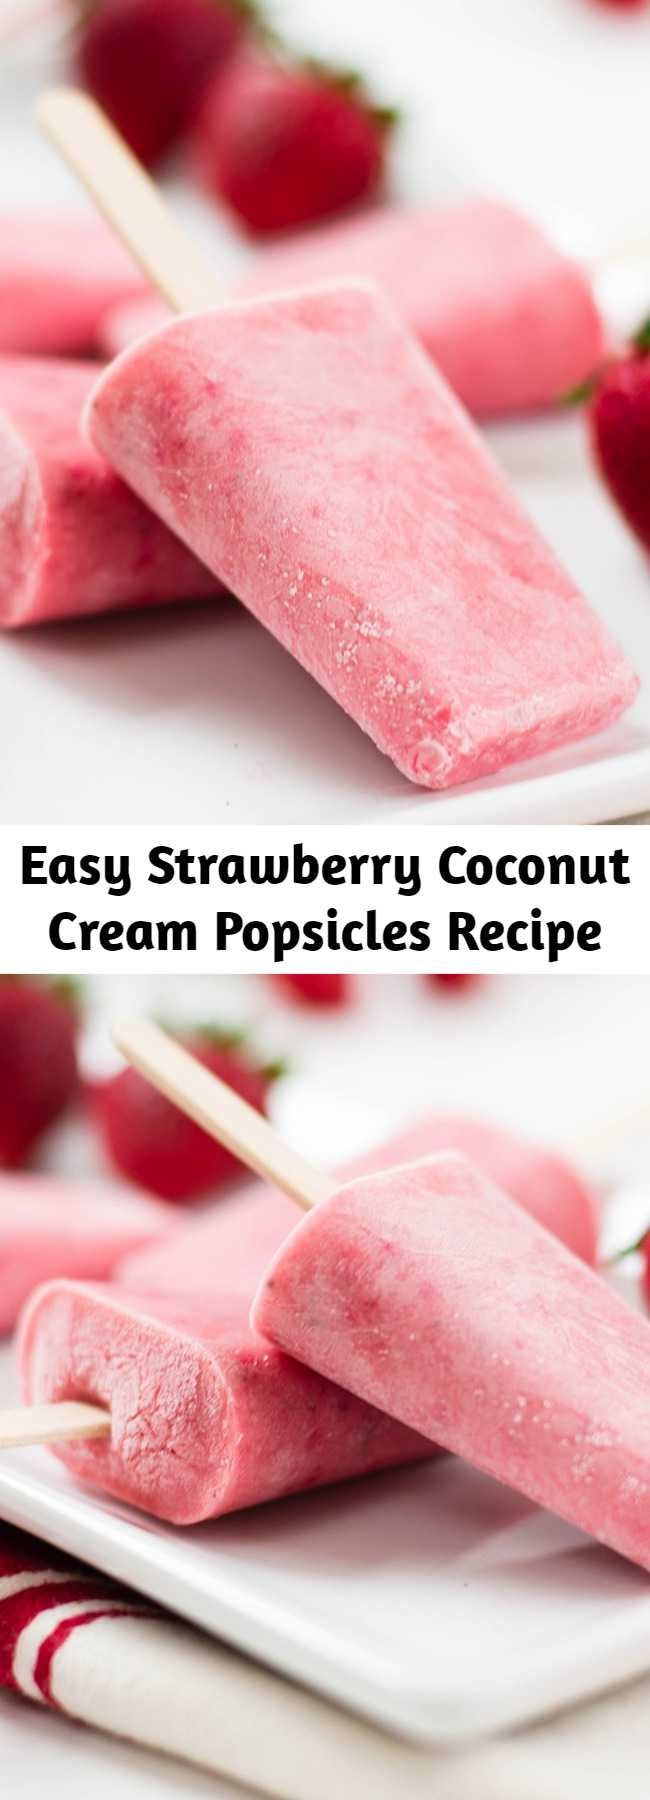 Easy Strawberry Coconut Cream Popsicles Recipe - This is a berry sweet way to cool off this summer.